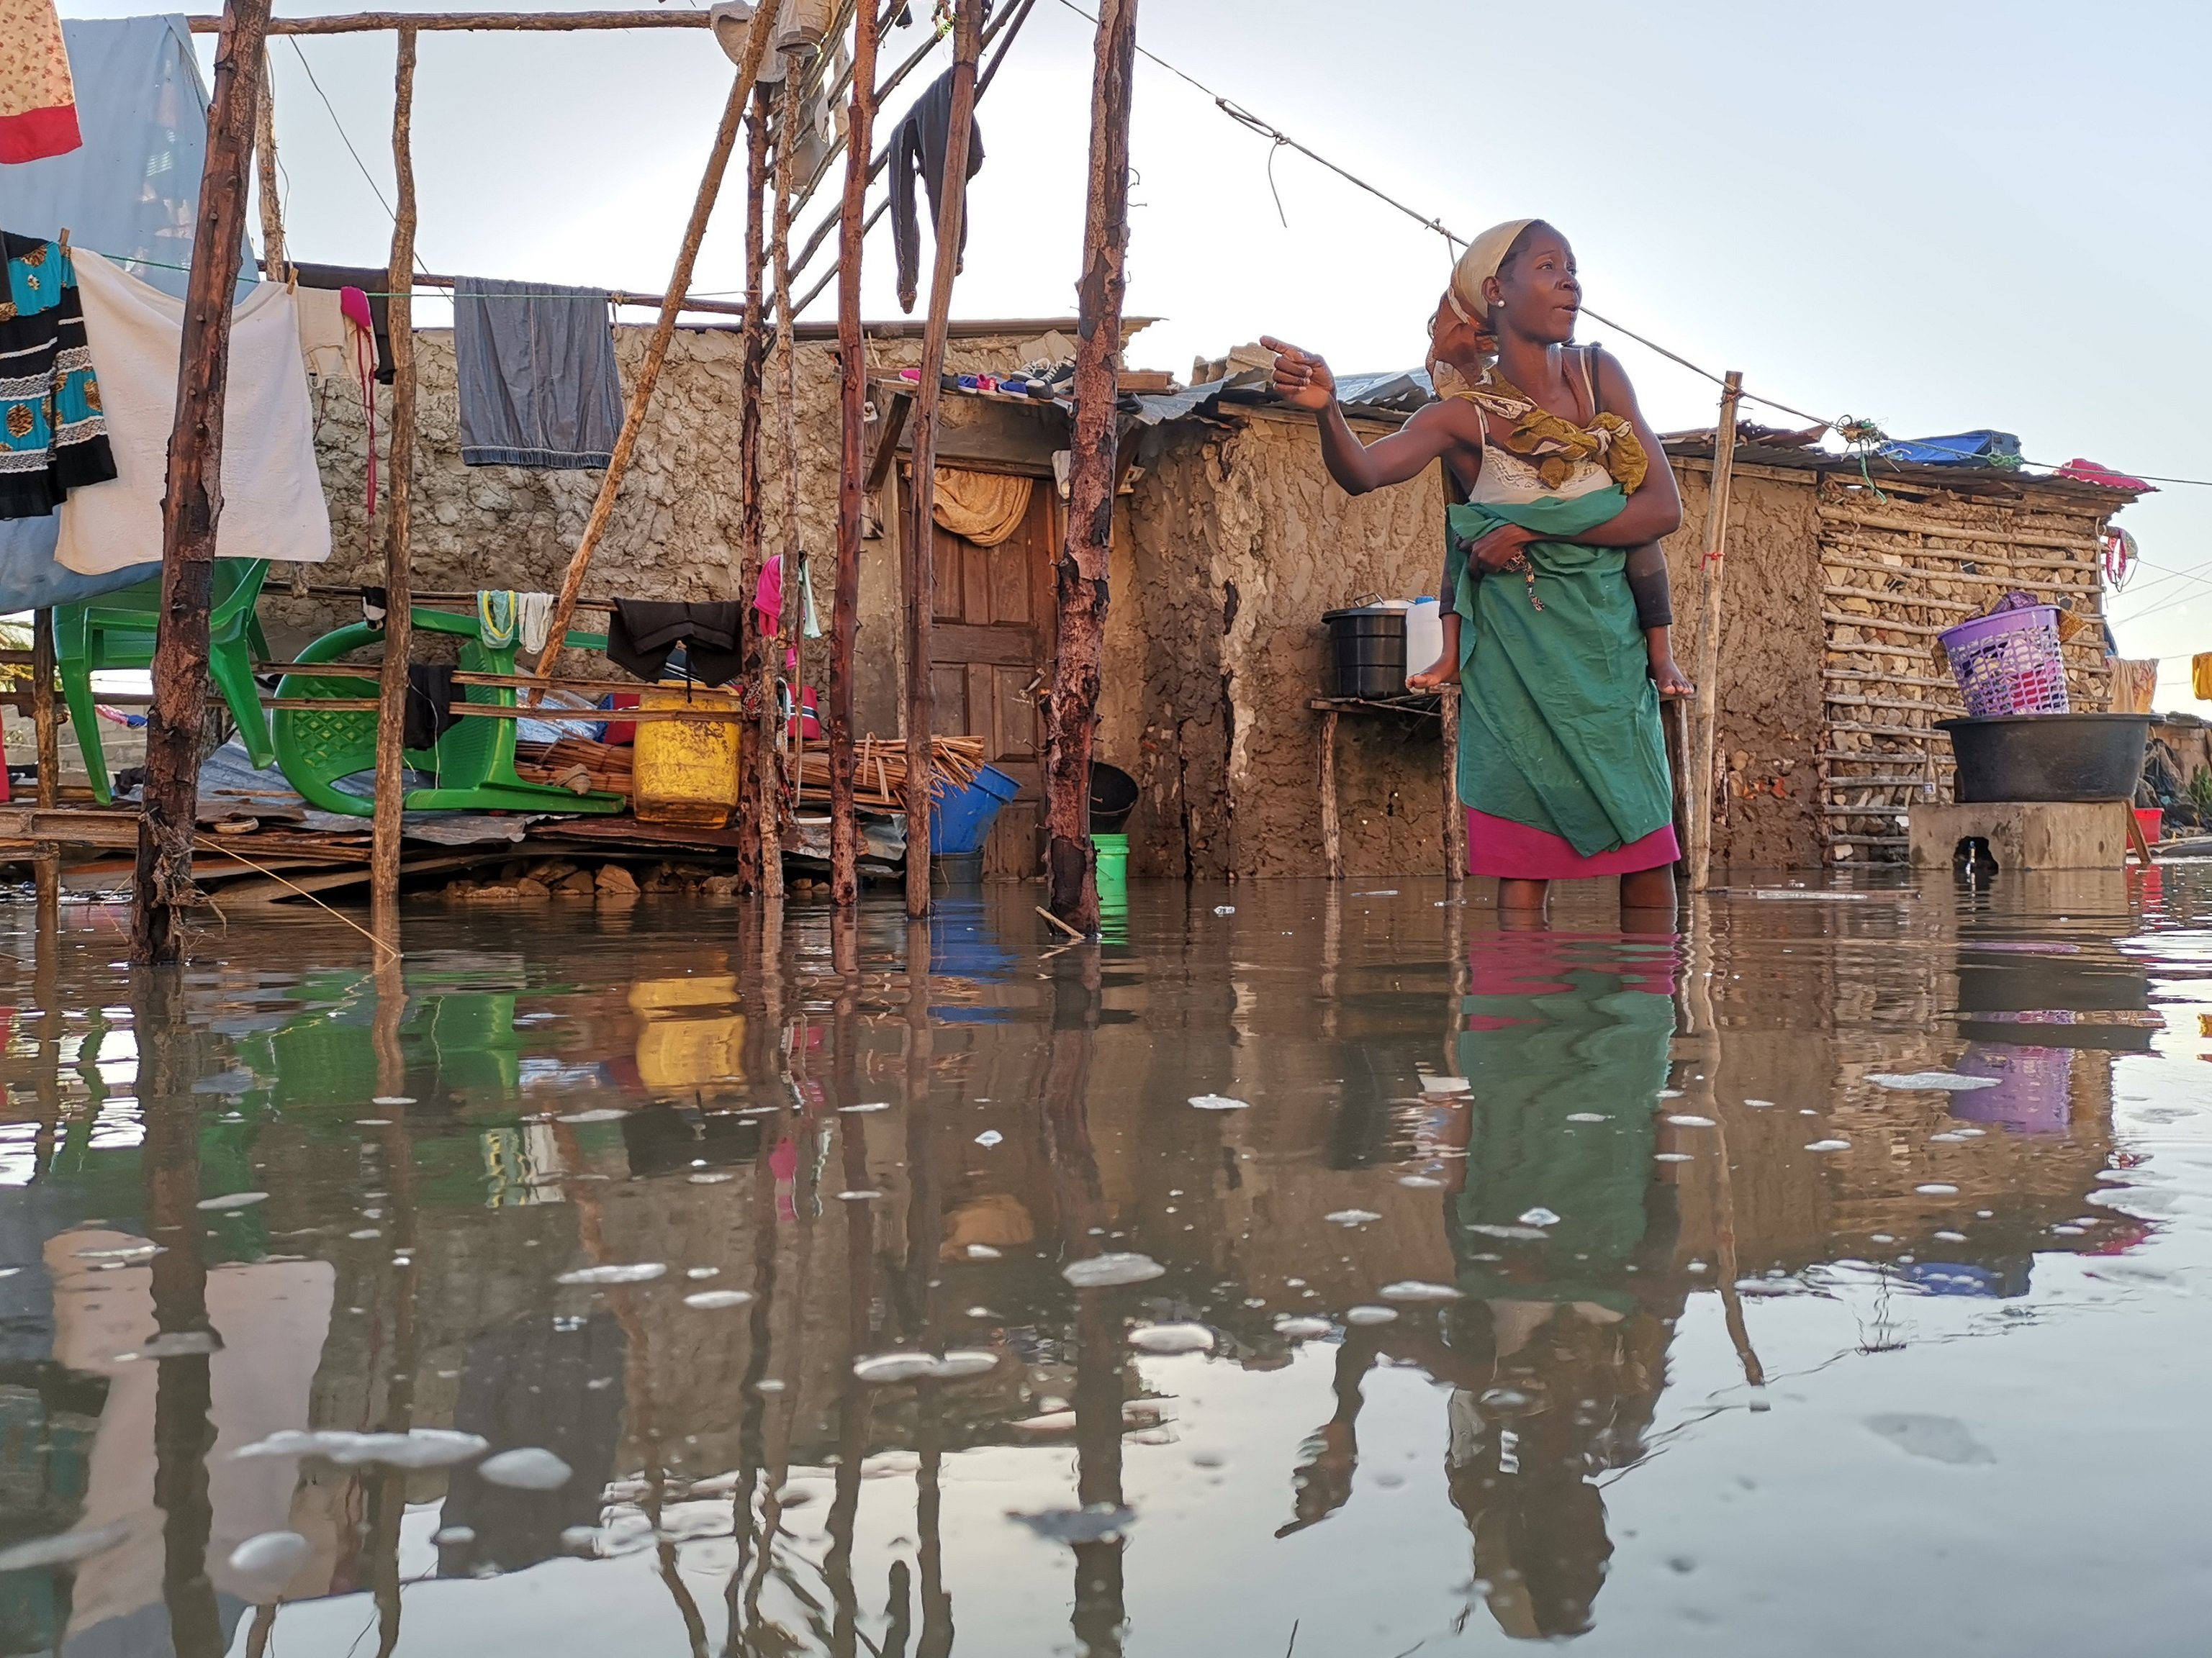 As floodwaters begin to recede, Oxfam is working hard to avert a secondary crisis: a cholera outbreak. As of 3 April, there have already been almost 1,500 reported cholera cases in badly-hit Beira, Mozambique. (Photo: Sergio Zimba / Oxfam)